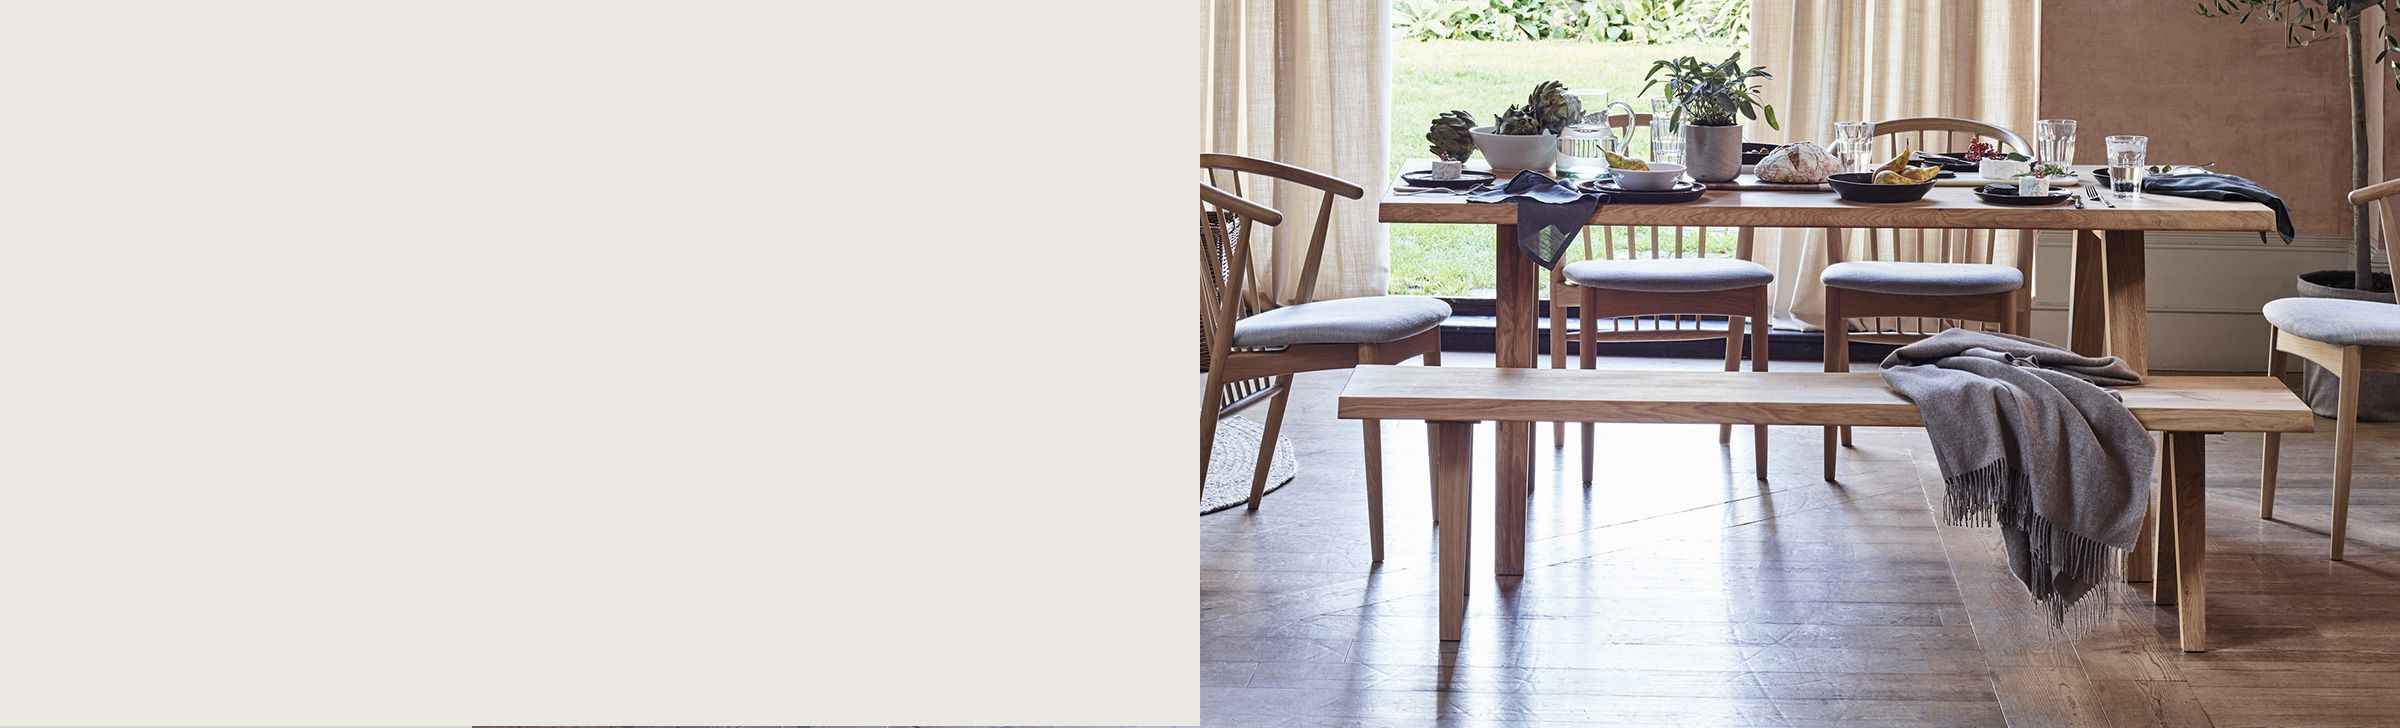 Make Mealtimes More Sociable With A New Dining Table From E Saving Oak Designs To Round Extendable Tables